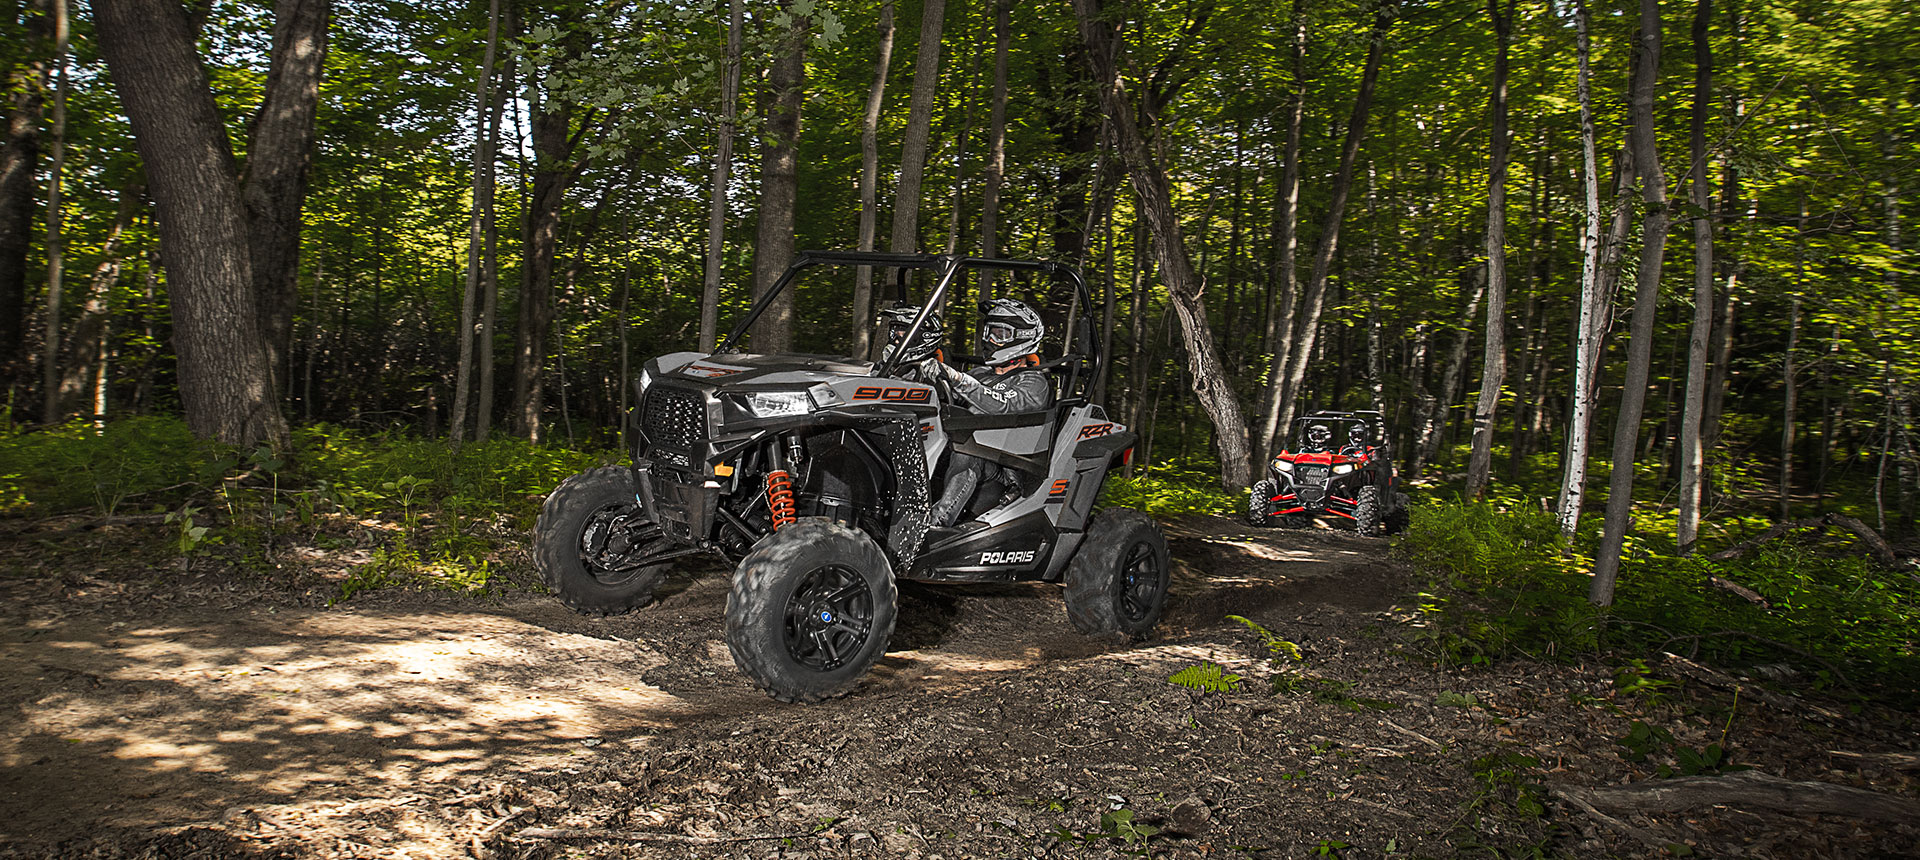 2019 Polaris RZR S 900 EPS in Sterling, Illinois - Photo 8